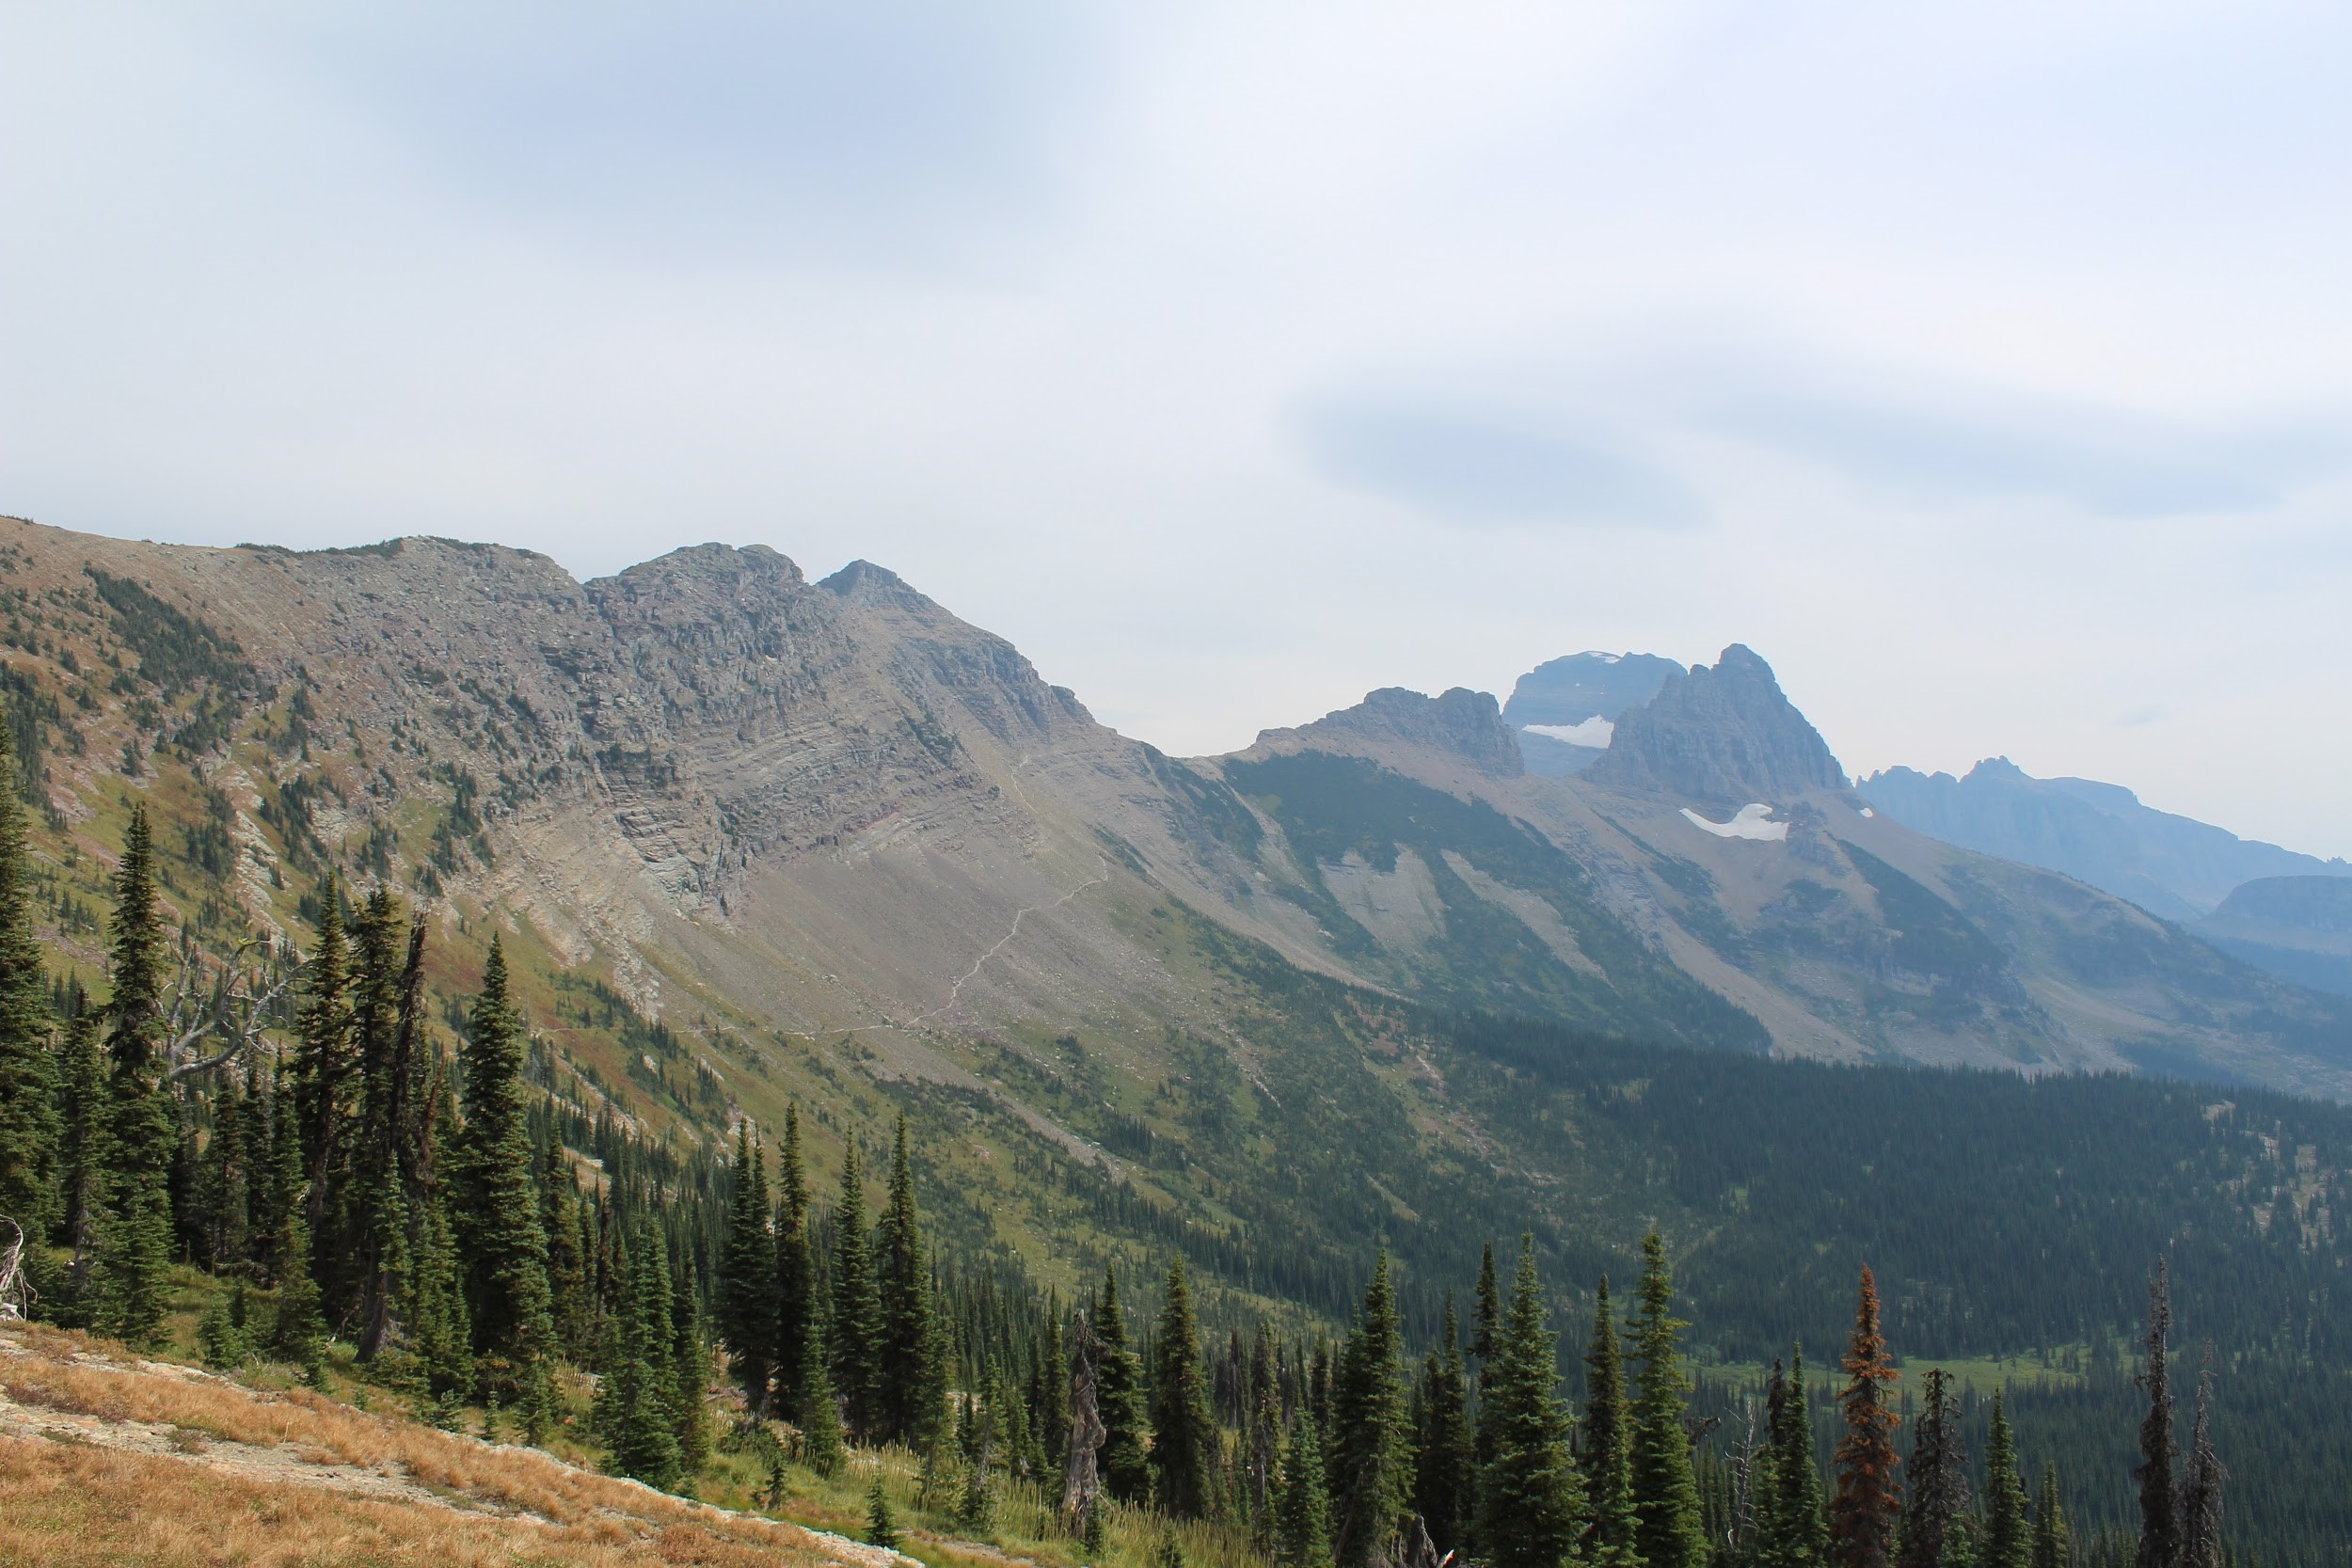 View from Glacier Park